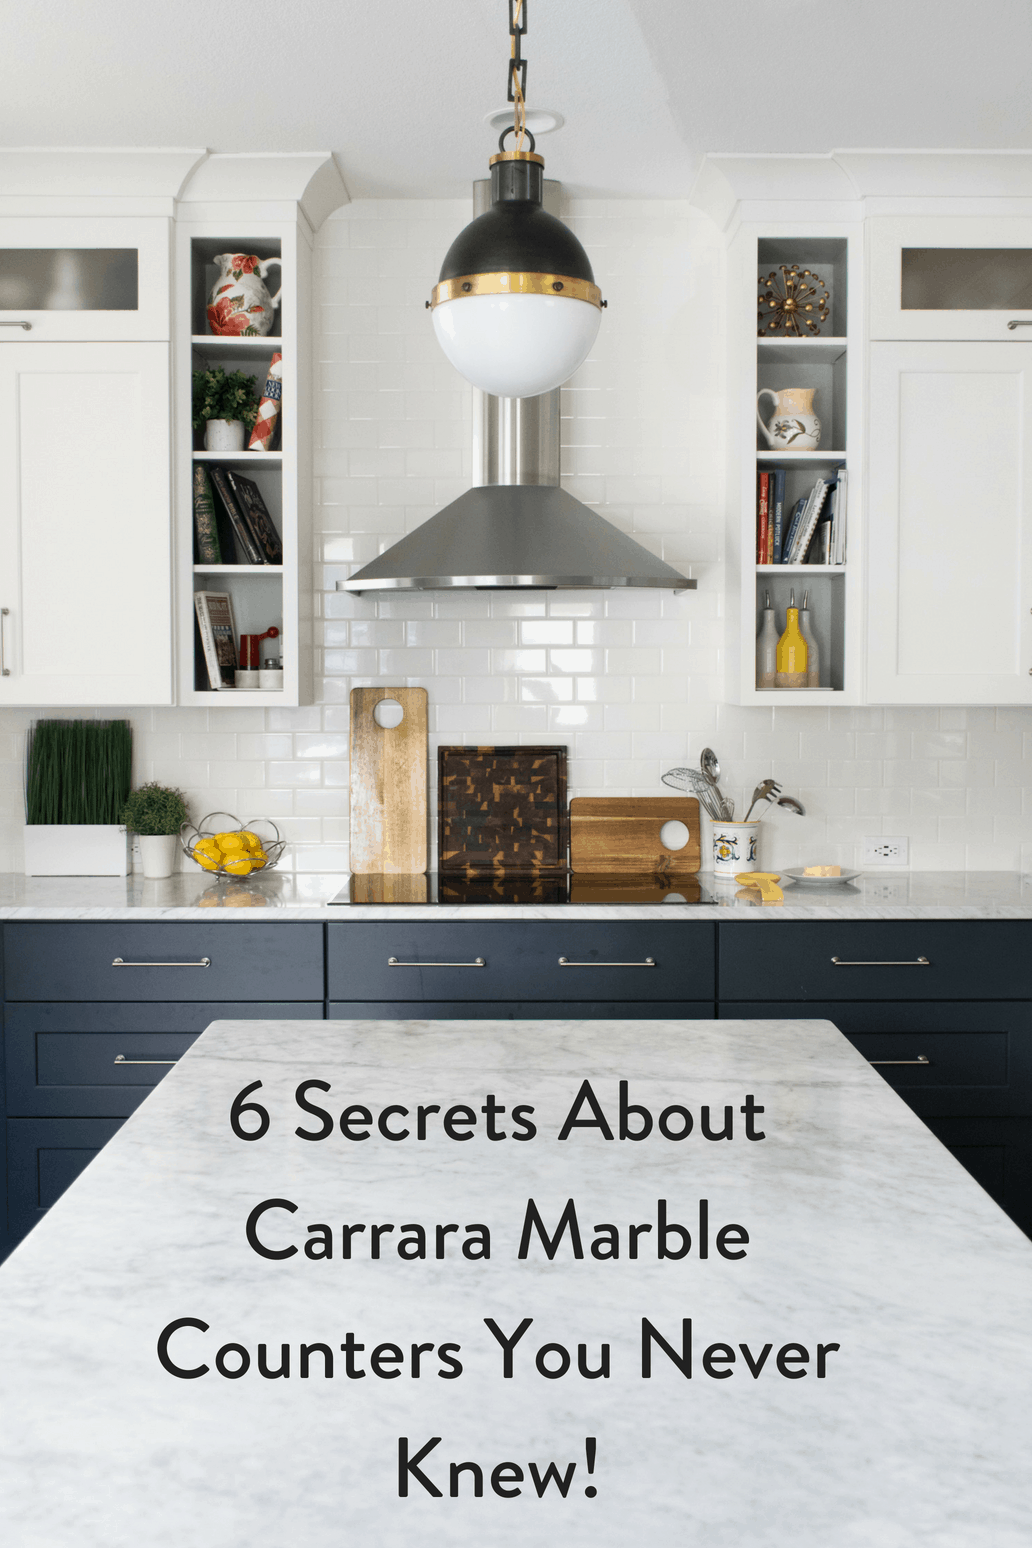 Carrara Marble Counters, Kitchen Remodel, Timeless Kitchen Finishes